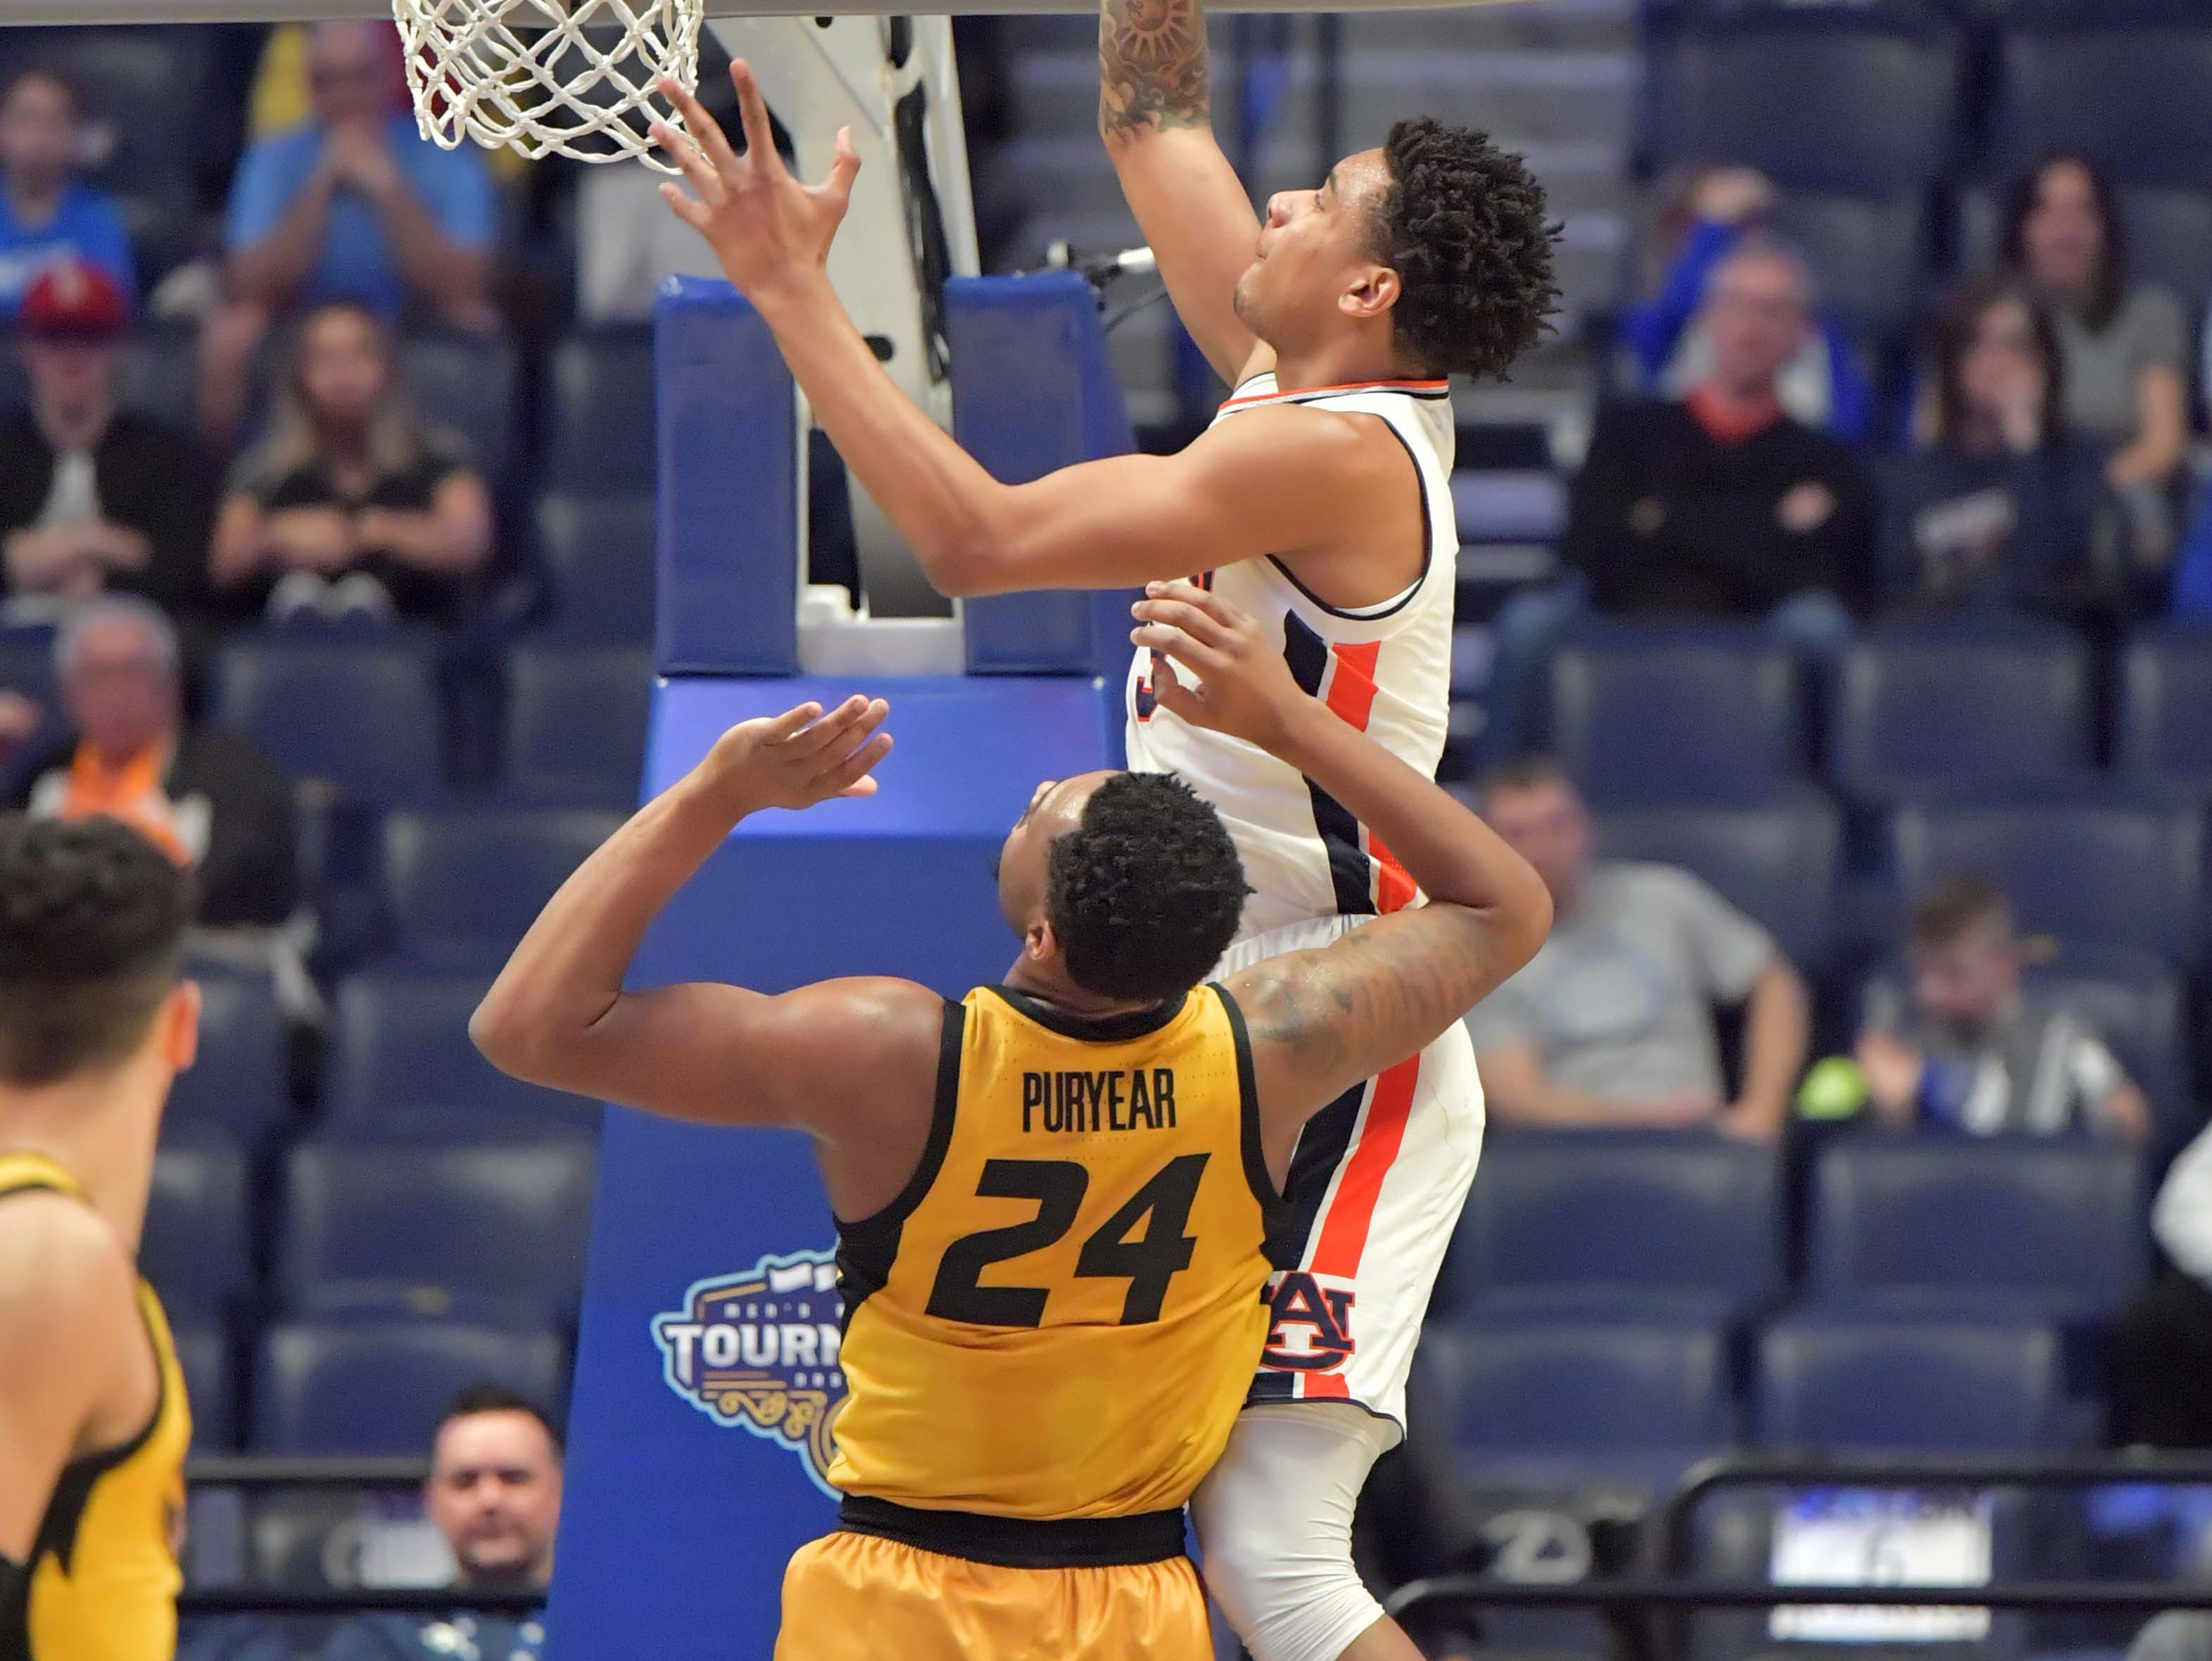 Mar 14, 2019; Nashville, TN, USA; Auburn Tigers forward Chuma Okeke (5) shoots the ball as Missouri Tigers forward Kevin Puryear (24) defends in the first half in the SEC conference tournament at Bridgestone Arena. Mandatory Credit: Jim Brown-USA TODAY Sports